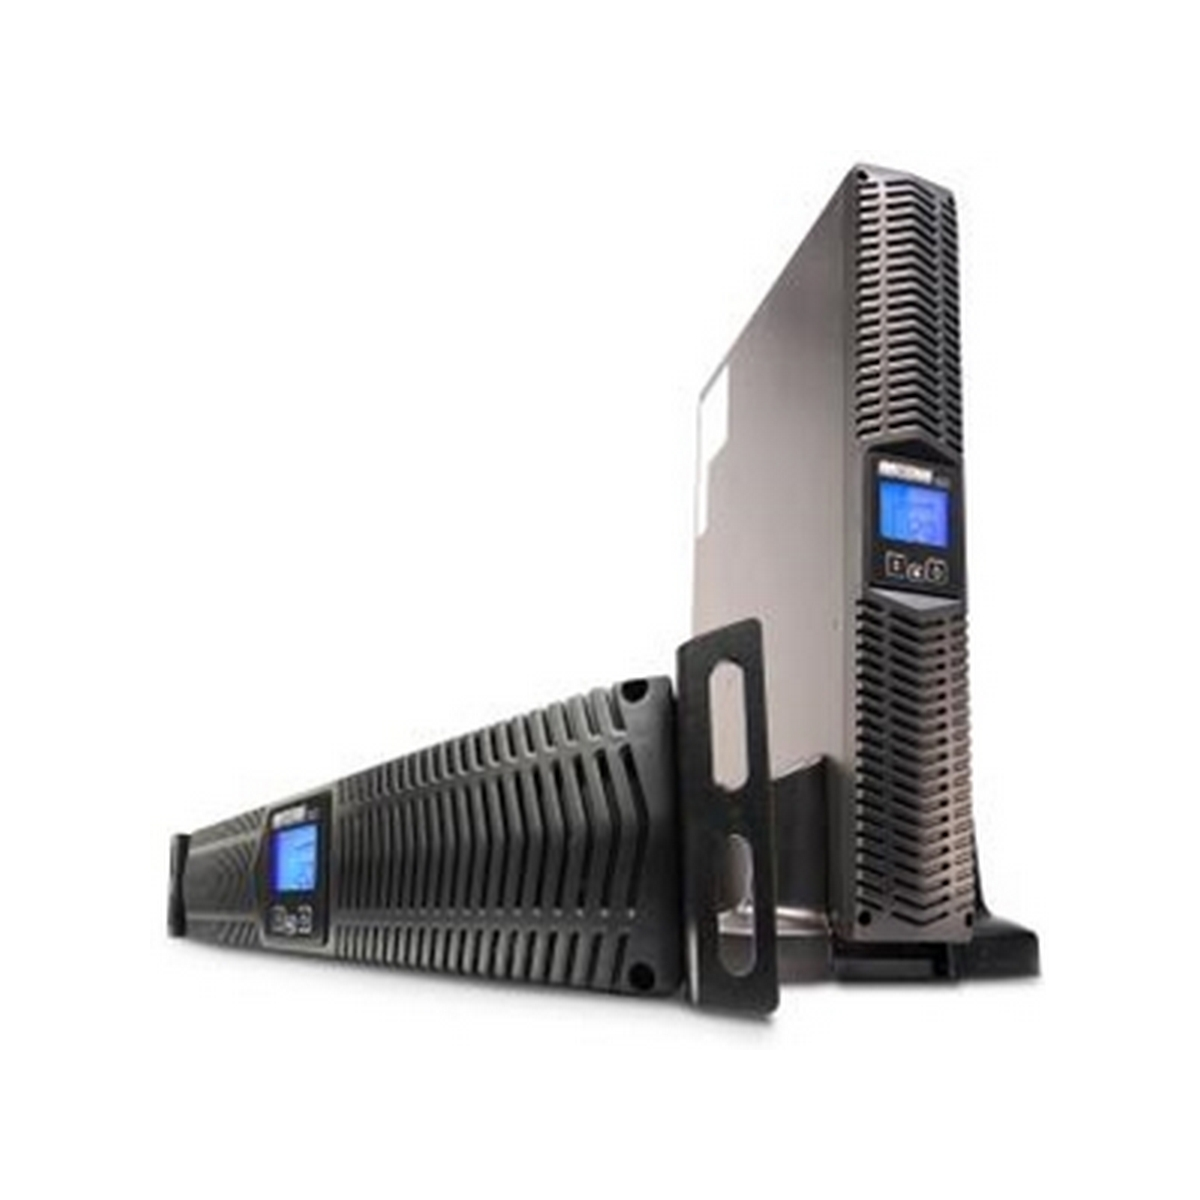 Enterprise Plus LCD, Line interactive, rack/tower/wall mount UPS